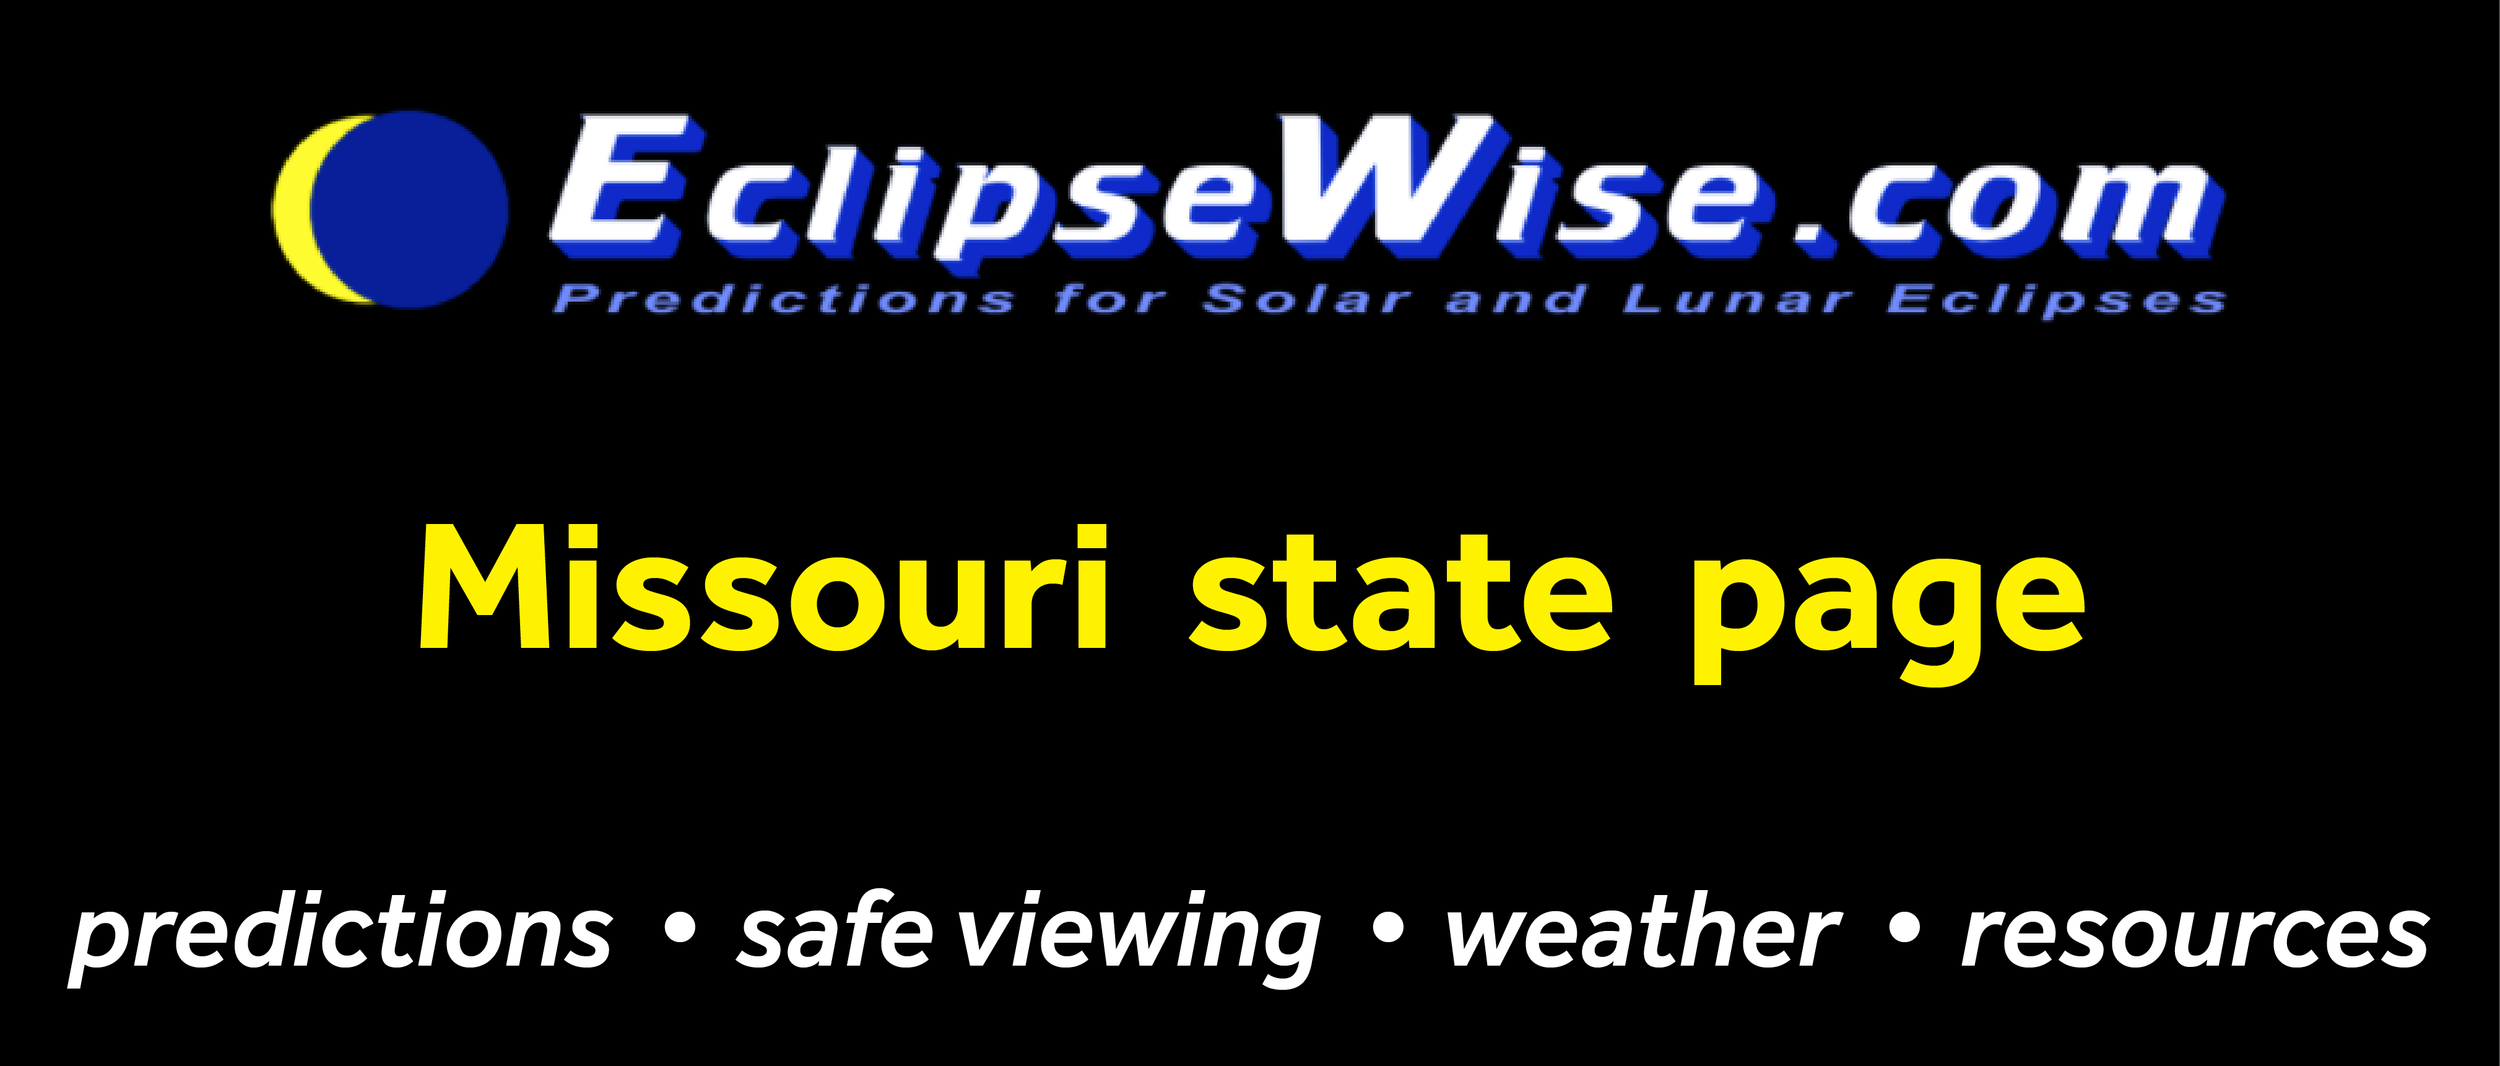 CLICK FOR THE Missouri STATE PAGE ON   ECLIPSEWISE.COM  . THE SITE PROVIDES THE MOST COMPREHENSIVE AND AUTHORITATIVE STATE PAGES FOR THE 2017 ECLIPSE. ECLIPSEWISE.COM IS BUILT BY FRED ESPENAK, RETIRED NASA ASTROPHYSICIST AND THE LEADING EXPERT ON ECLIPSE PREDICTIONS.